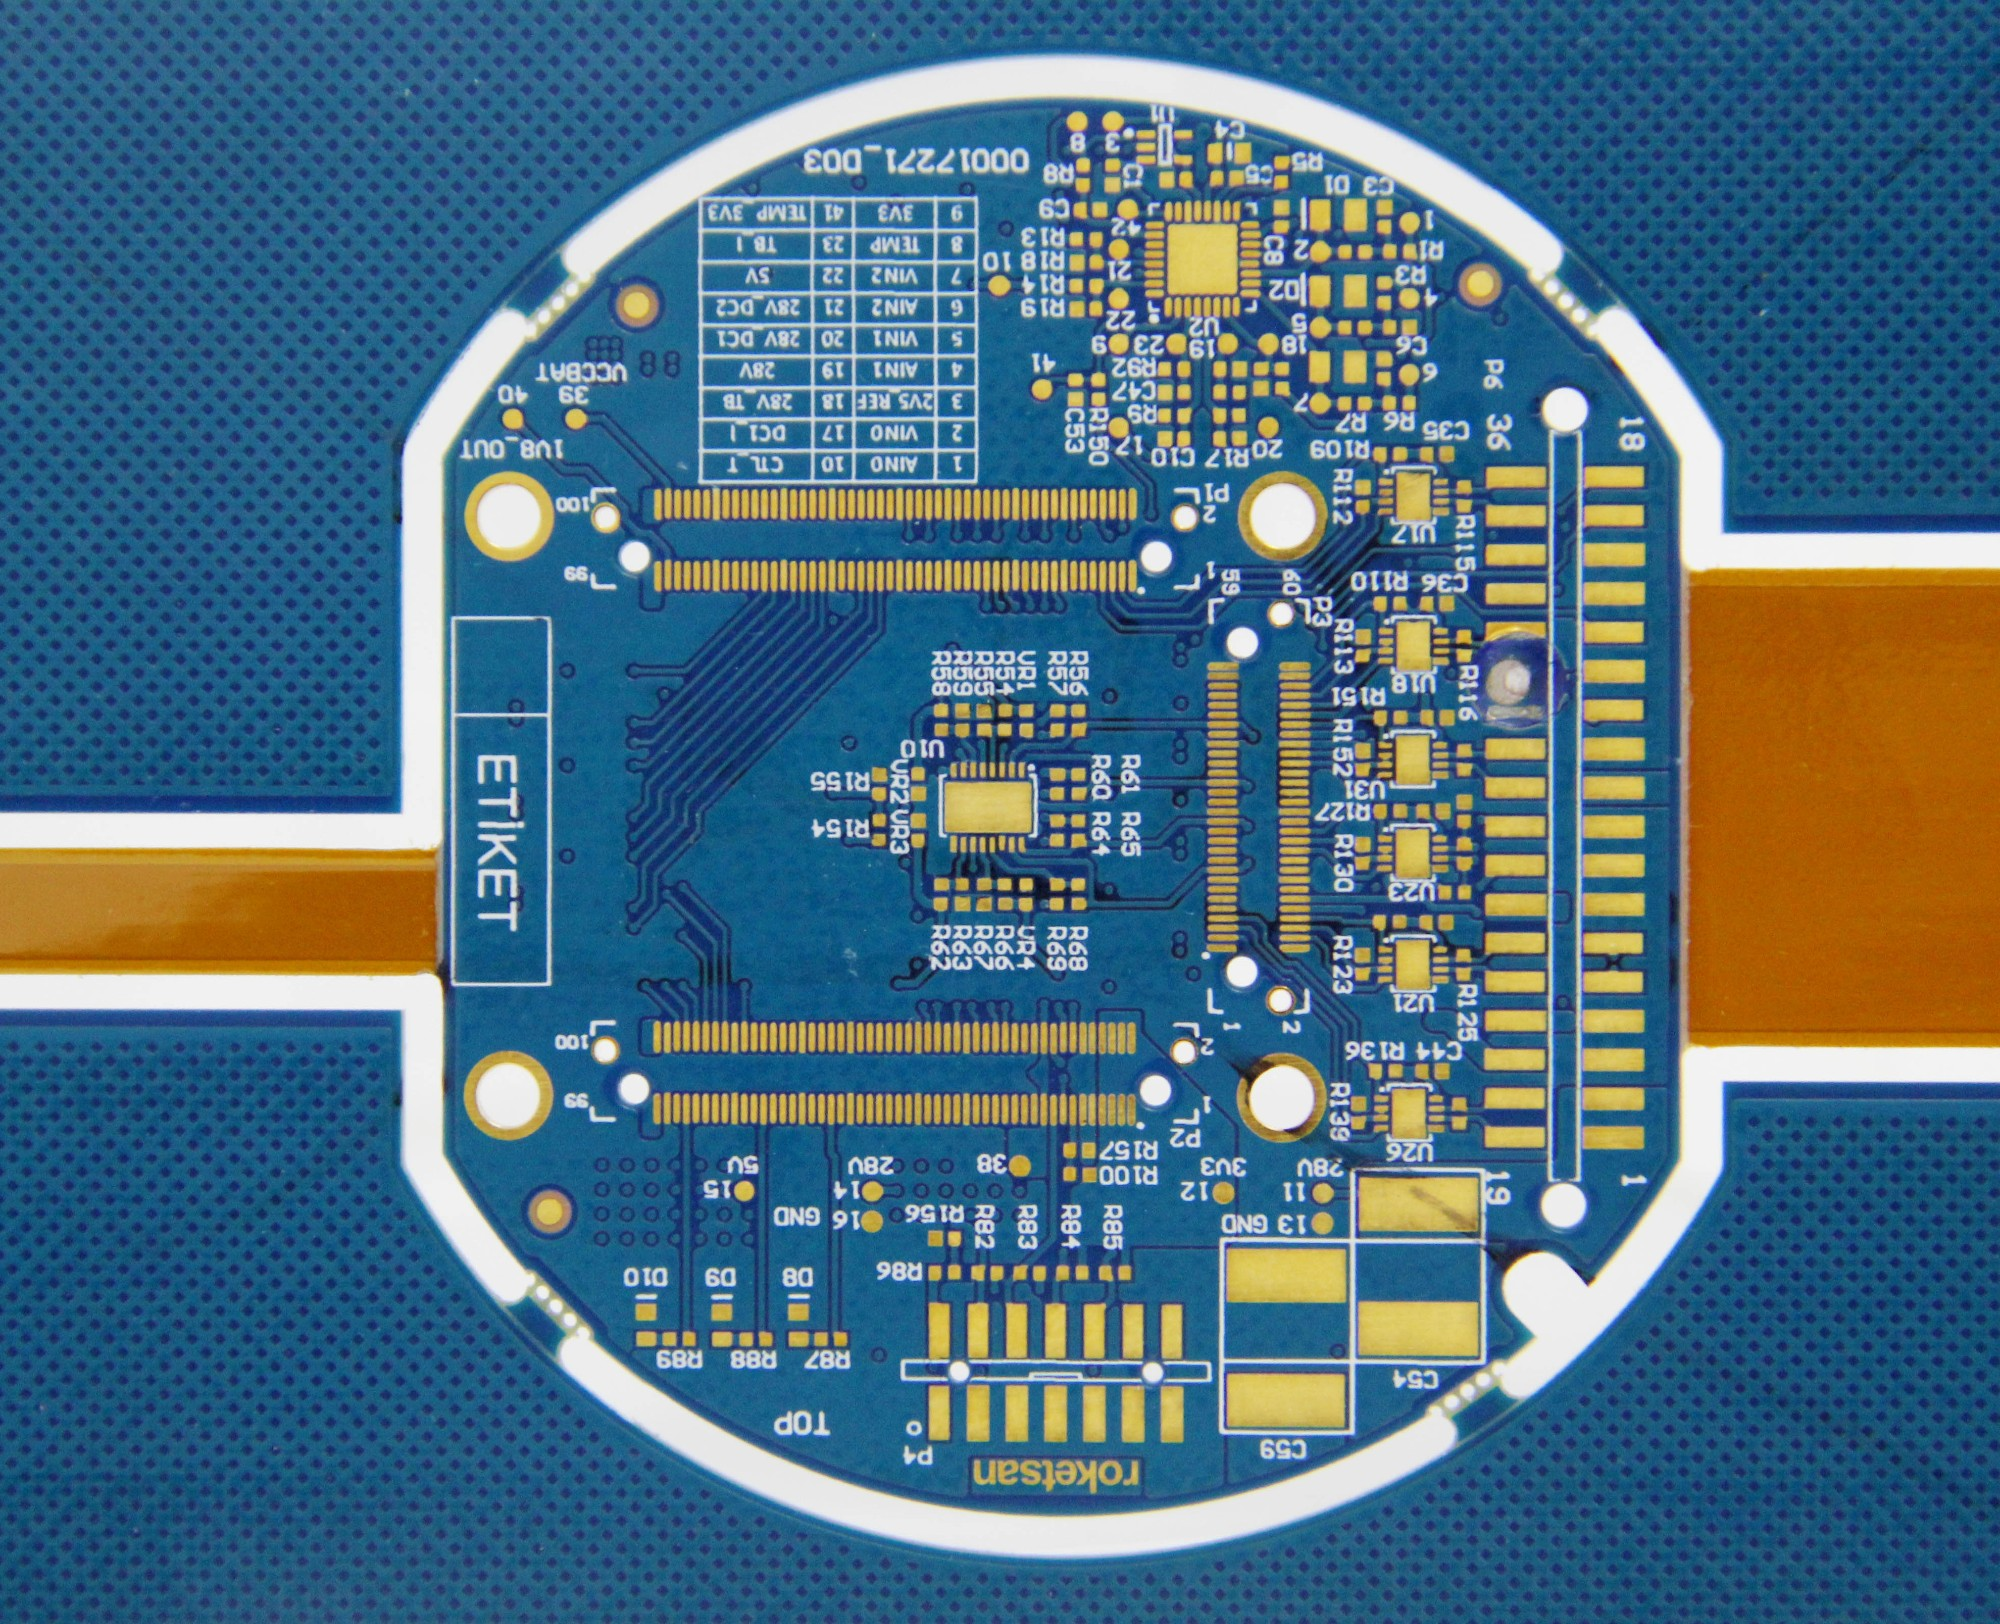 Small Volume Pcb With Mixed Types Manufacturers, Small Volume Pcb With Mixed Types Factory, Supply Small Volume Pcb With Mixed Types